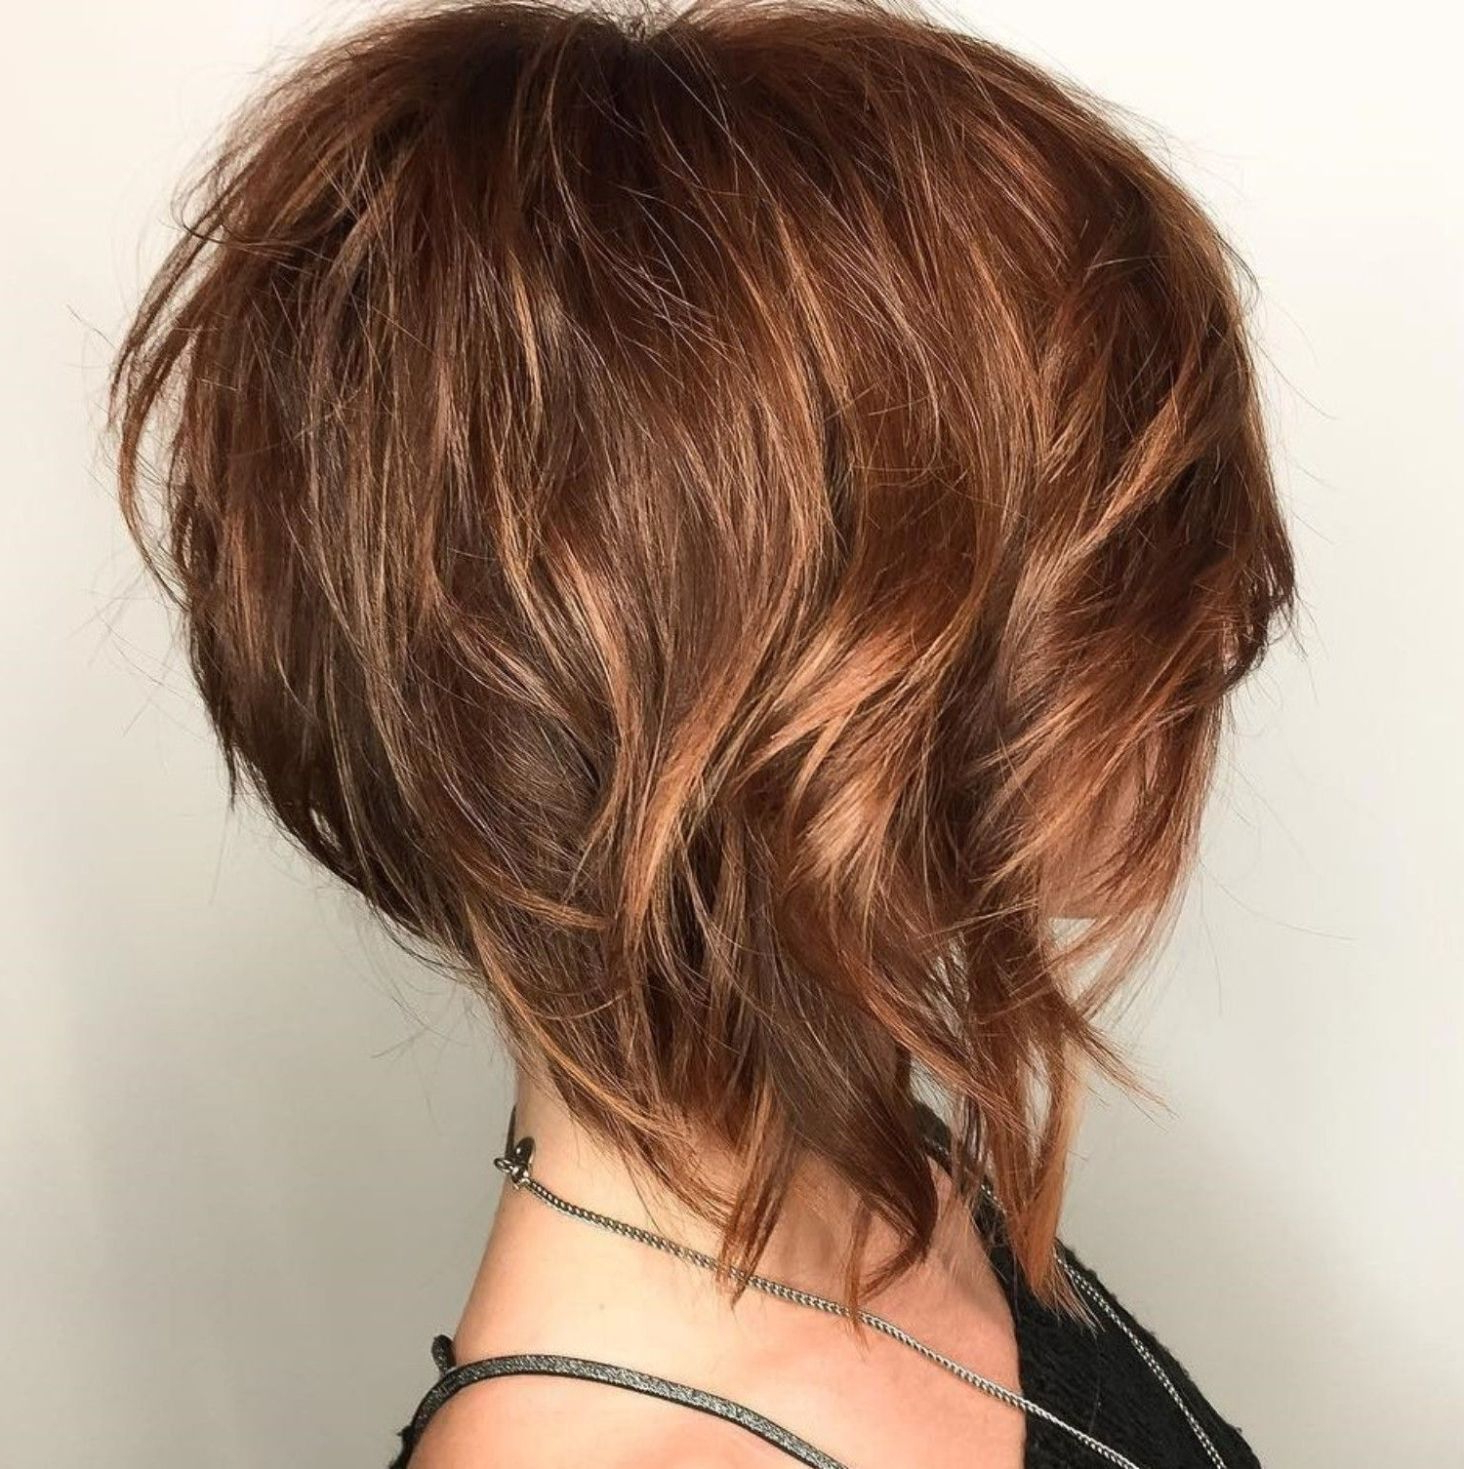 Pin On Hair: Cuts And Colors With Regard To Most Popular Graduated Bob Hairstyles With Face Framing Layers (View 2 of 20)